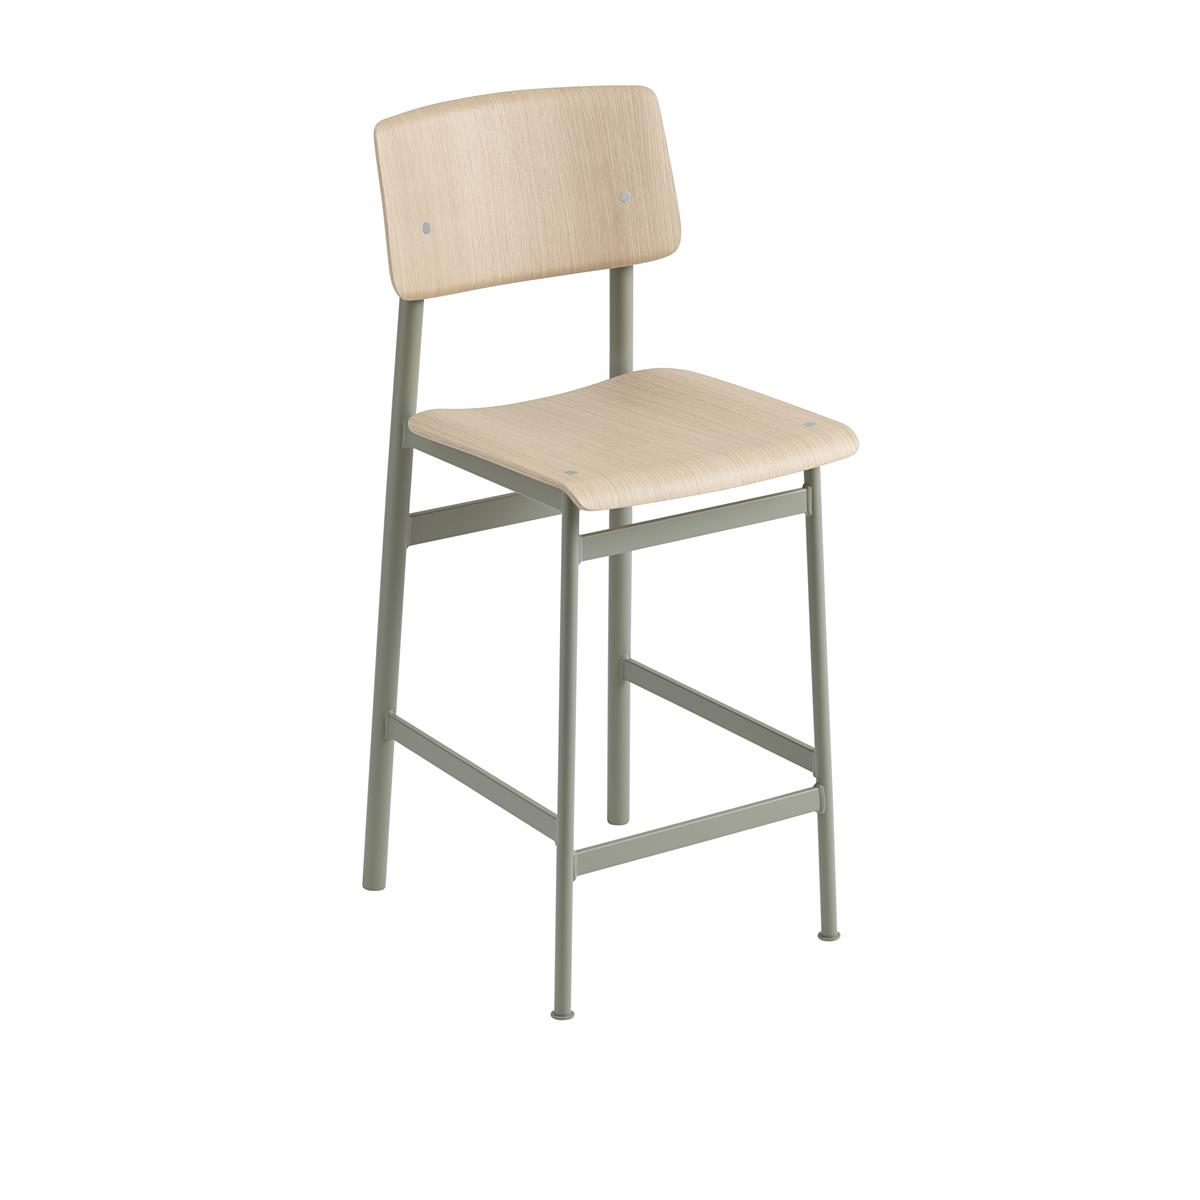 Loft Bar Stool H65 - Dusty Green & Oak